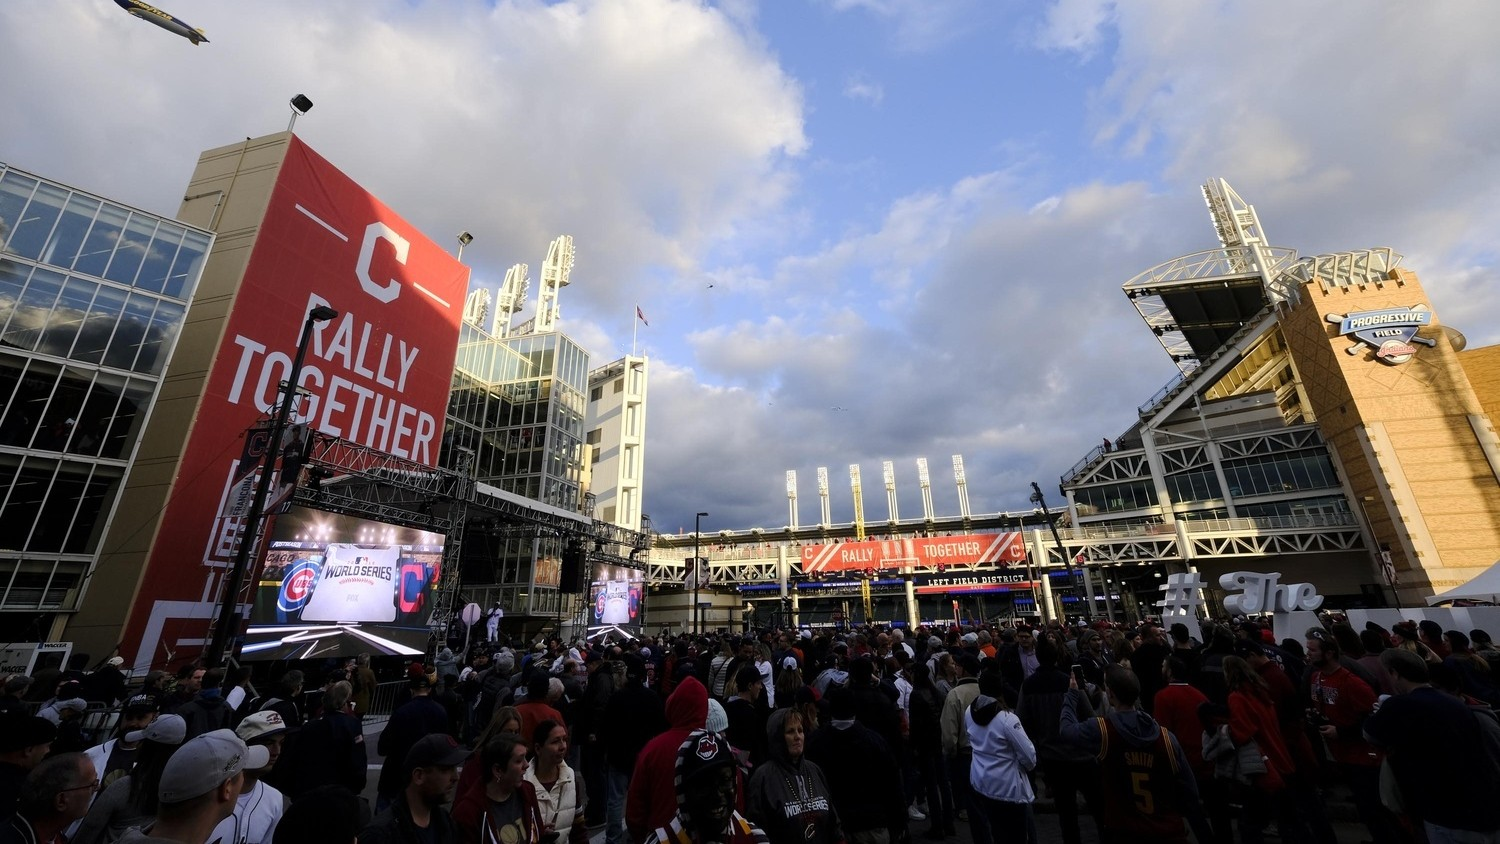 On Tuesday in Cleveland, Plenty of Reasons to Celebrate